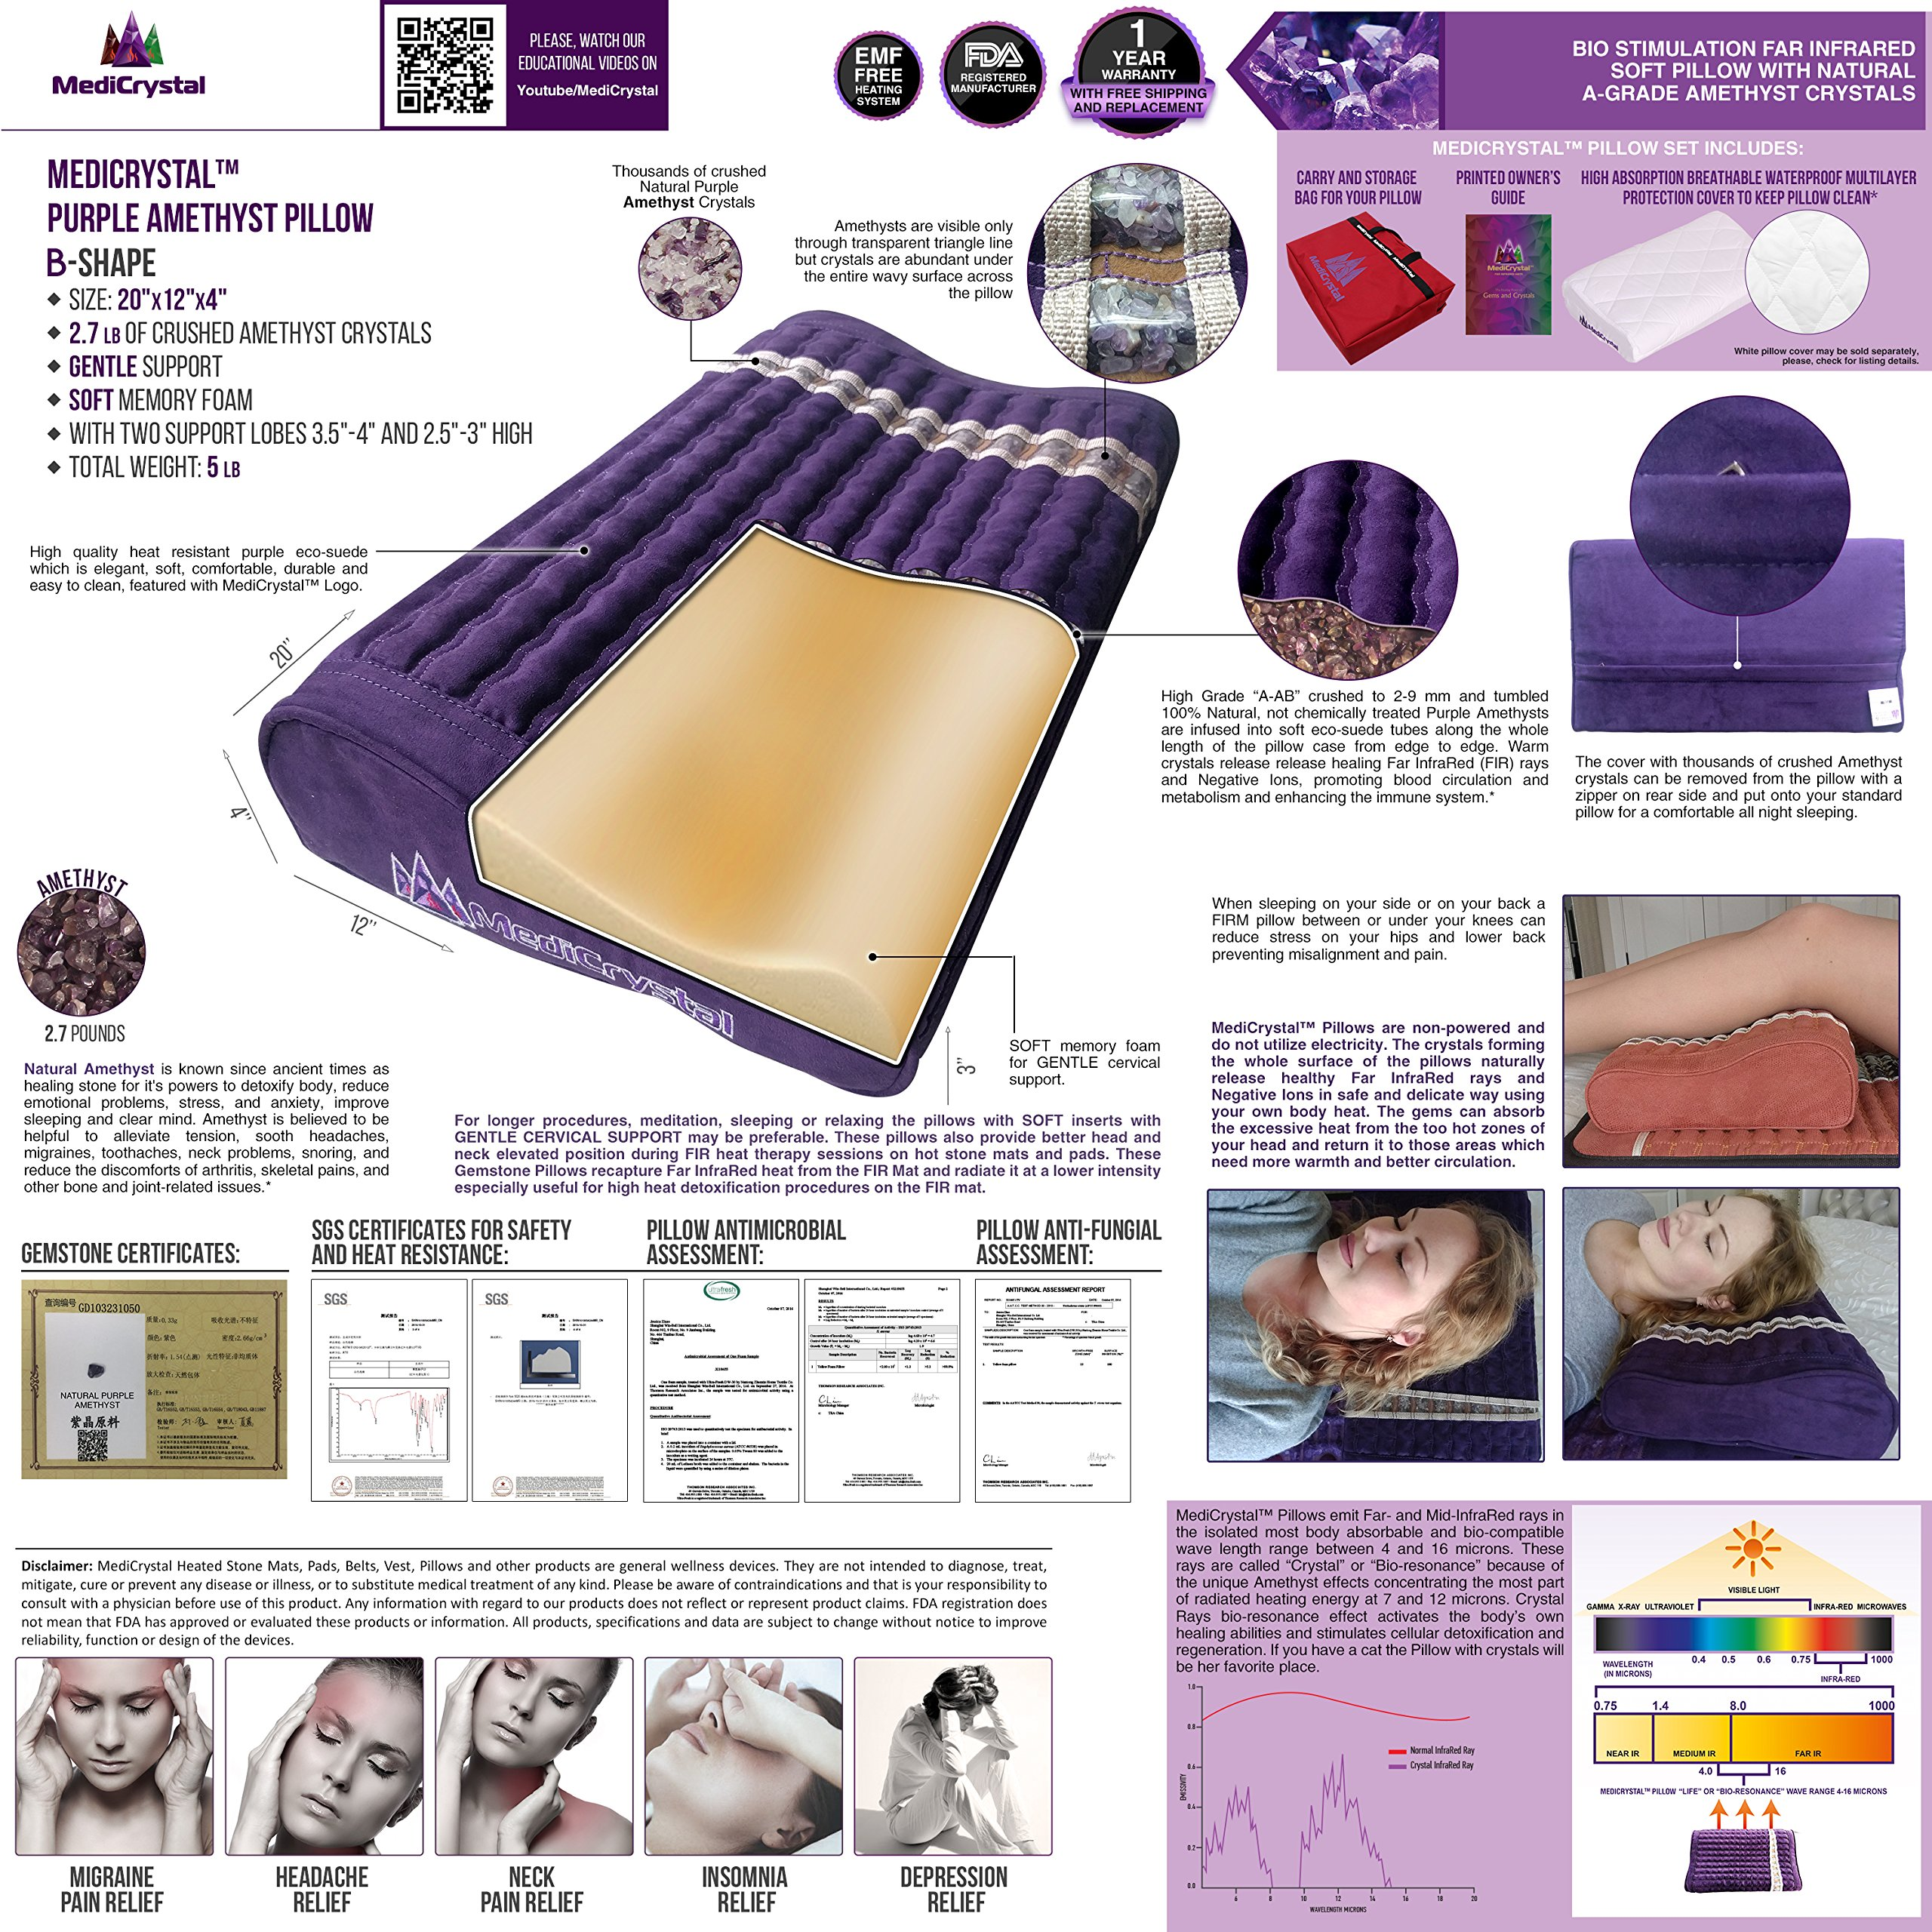 Far Infrared Amethyst Mat Pillow - Emits Negative Ions - Crystal FIR Rays - 100% Natural Amethyst Gemstones - Non Electric - For Headache and Stress Relief - To Sleep Better - GENTLE support - Purple by MediCrystal (Image #9)